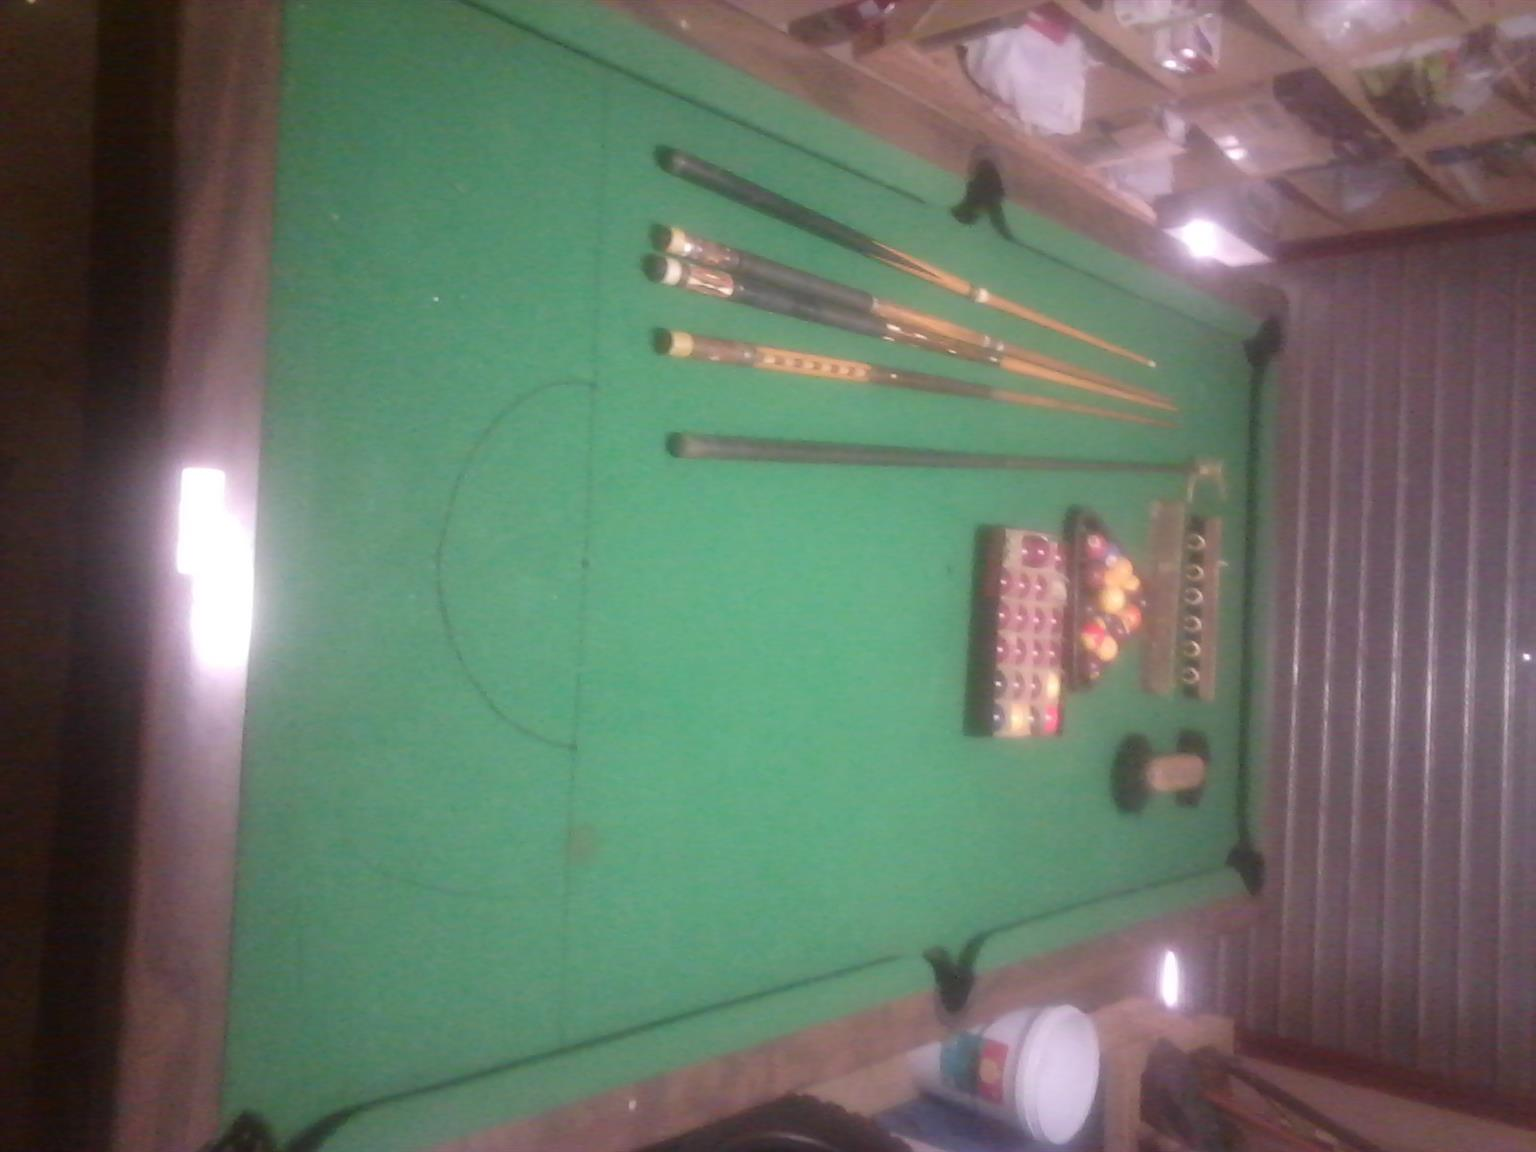 Pool Table Brunswick Bristol & Accessories for sale